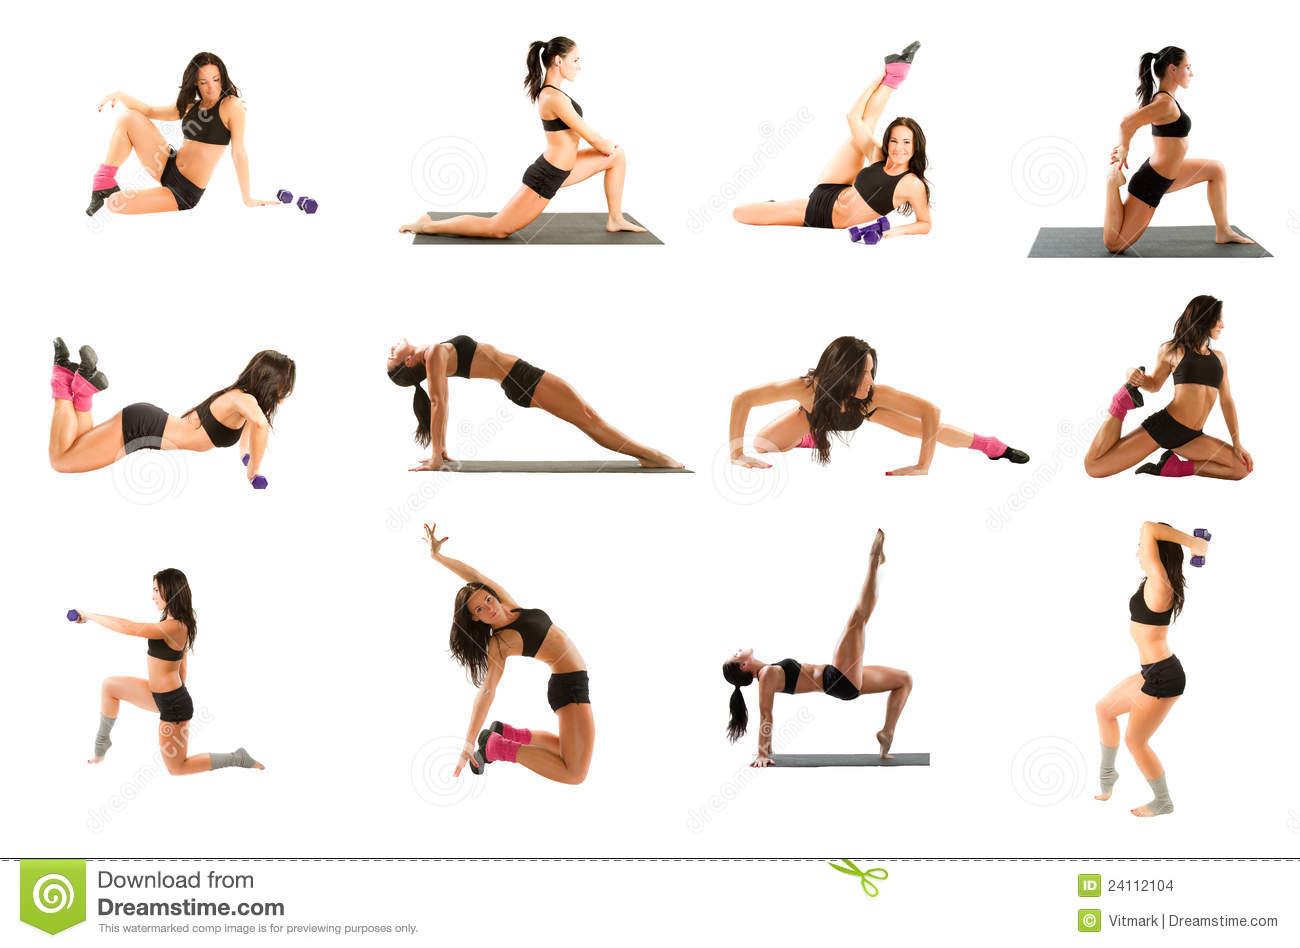 Woman exercising collage - yoga,fitness,pilates